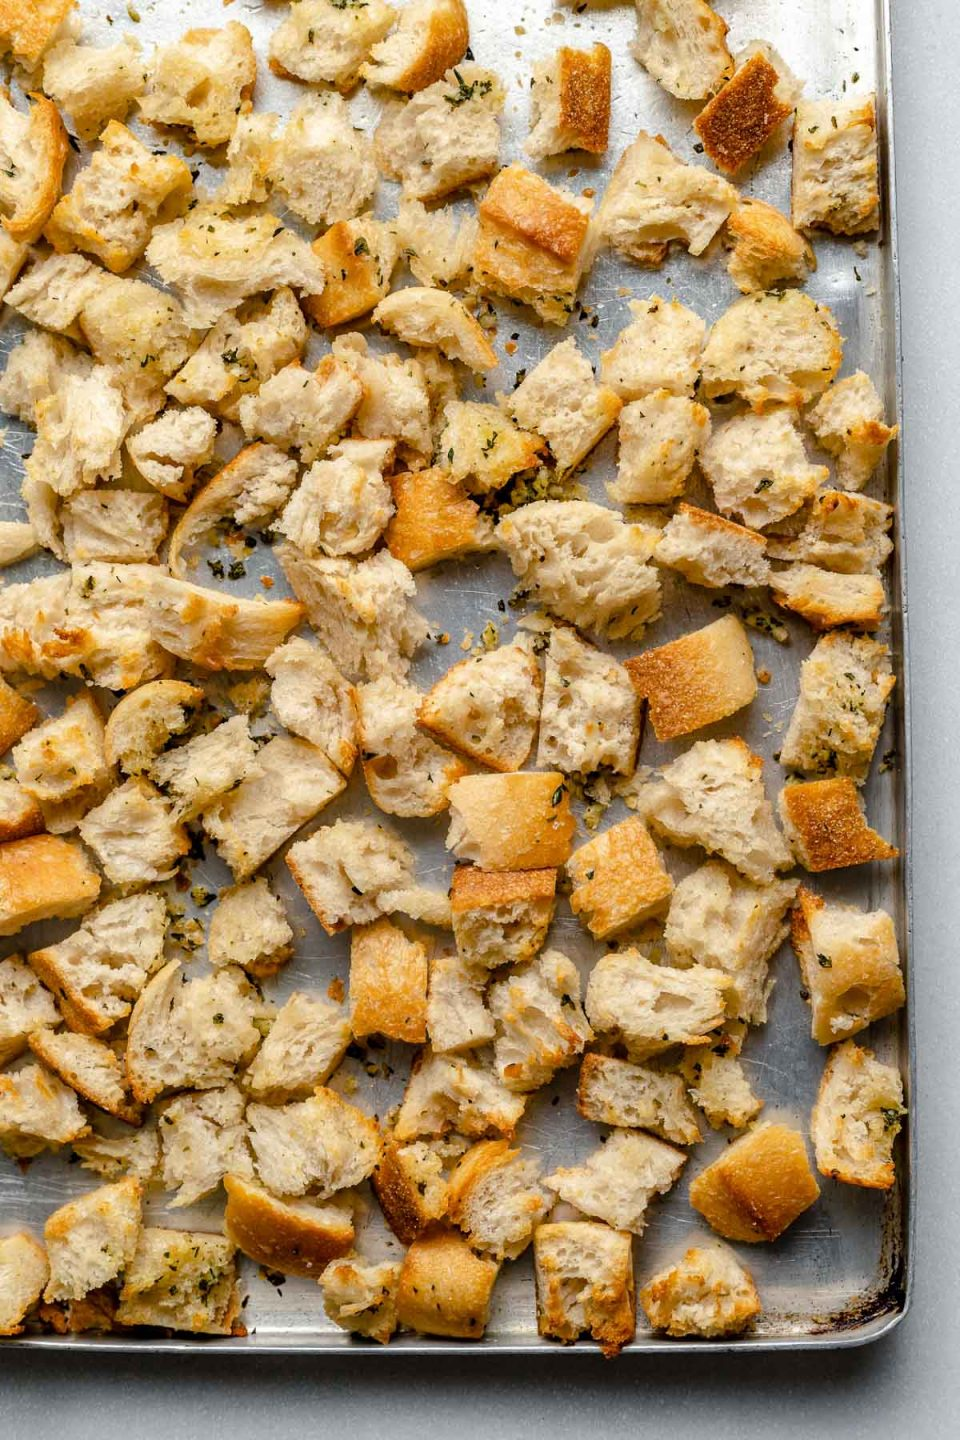 Homemade herbed sourdough bread cubes on a large baking sheet.